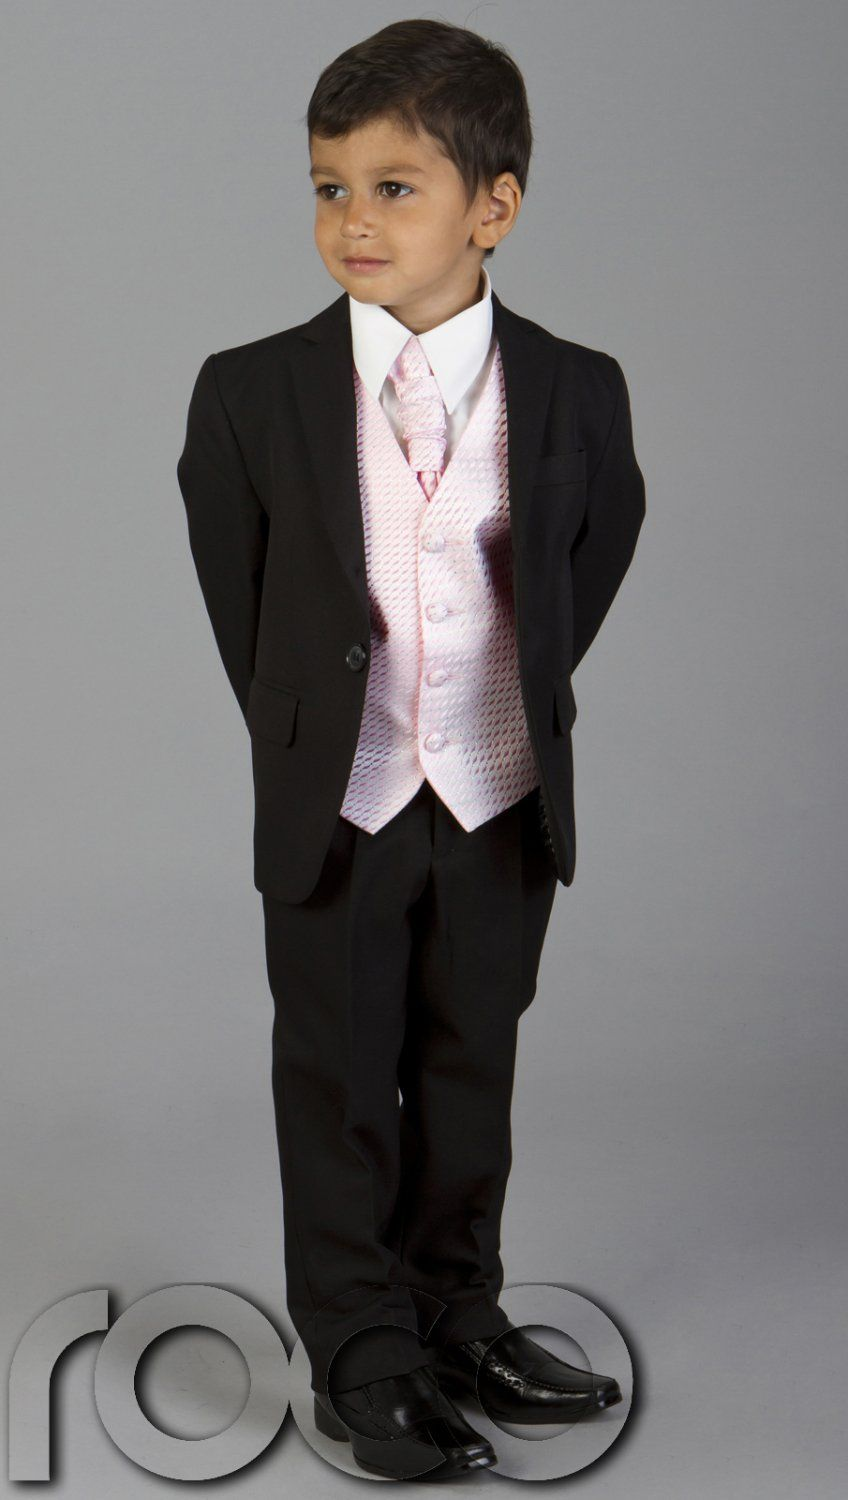 Kids Wedding Suit For Boys